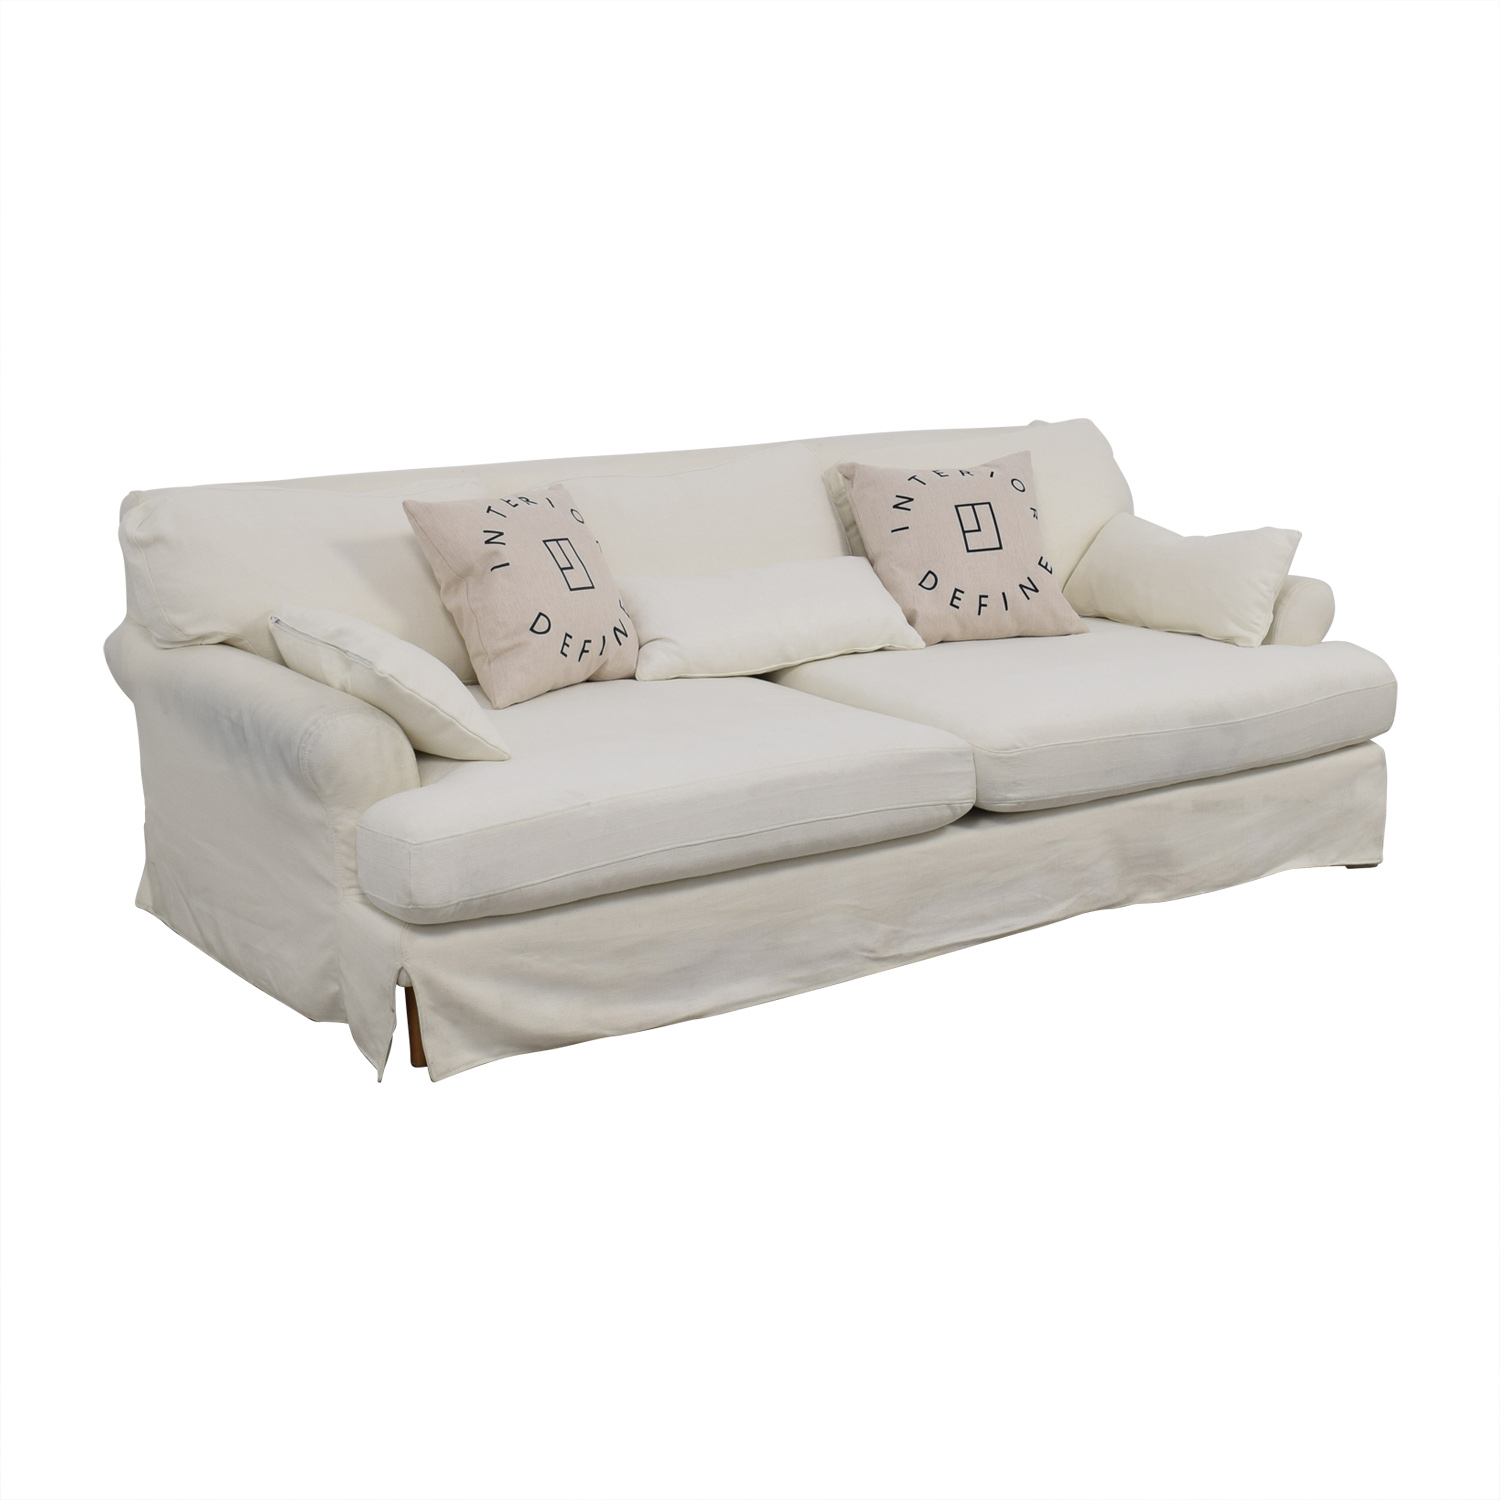 off white slipcover sofa how high should a table be 79 maxwell slipcovered sofas